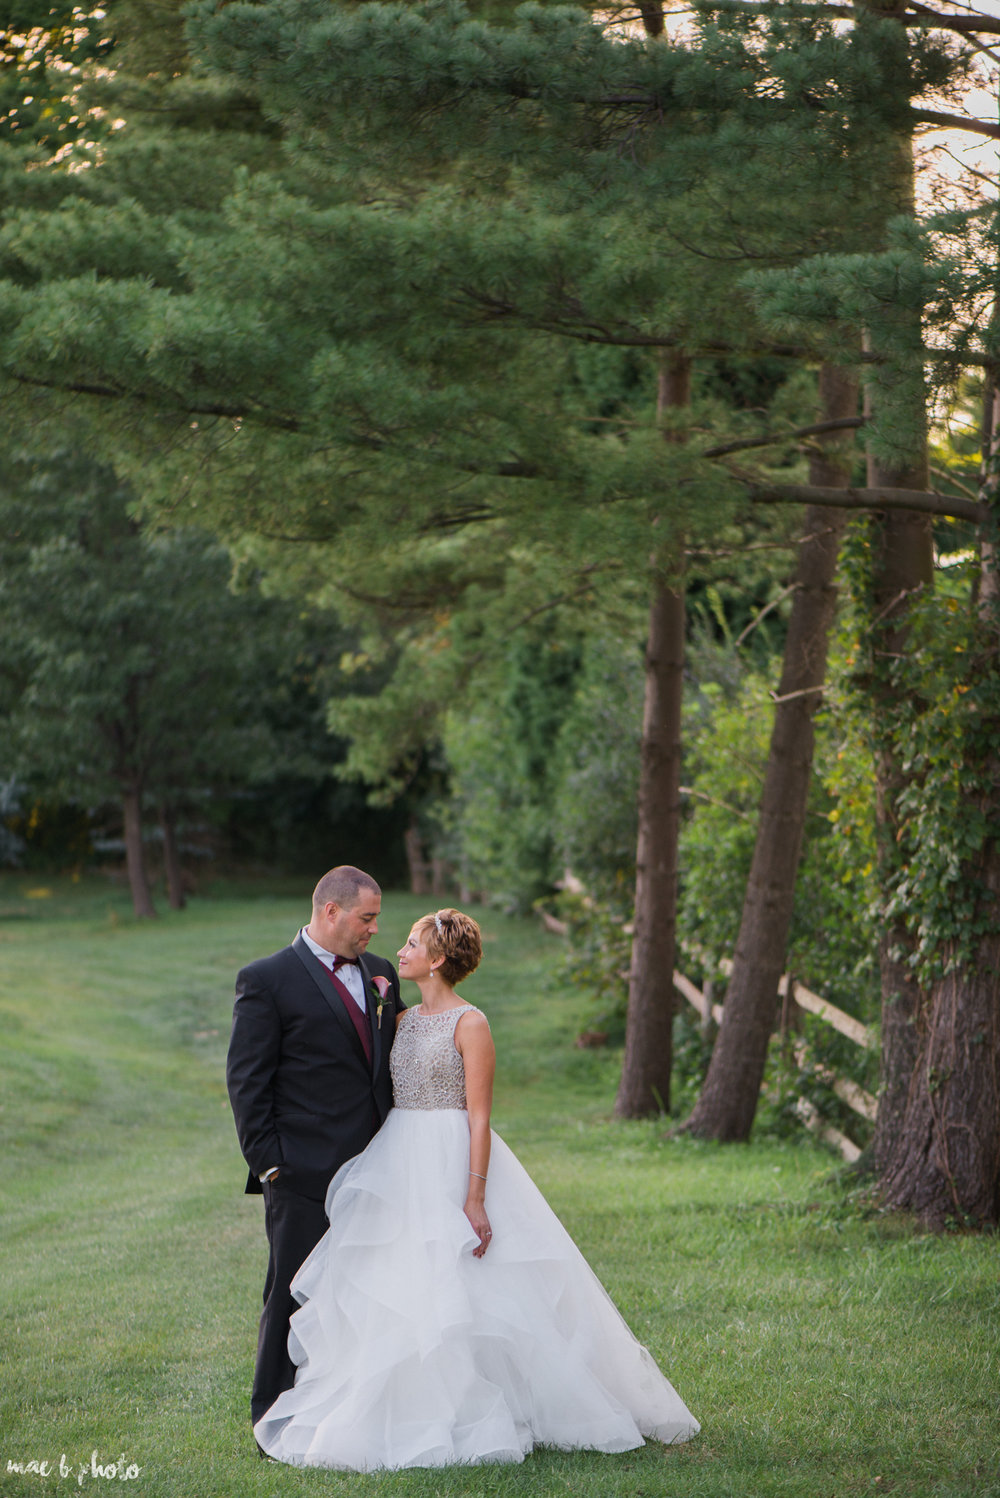 Mary Catherine & Chad's Elegant and Intimate Country Club Wedding at Squaw Creek in Youngstown Ohio by Mae B Photo-74.jpg